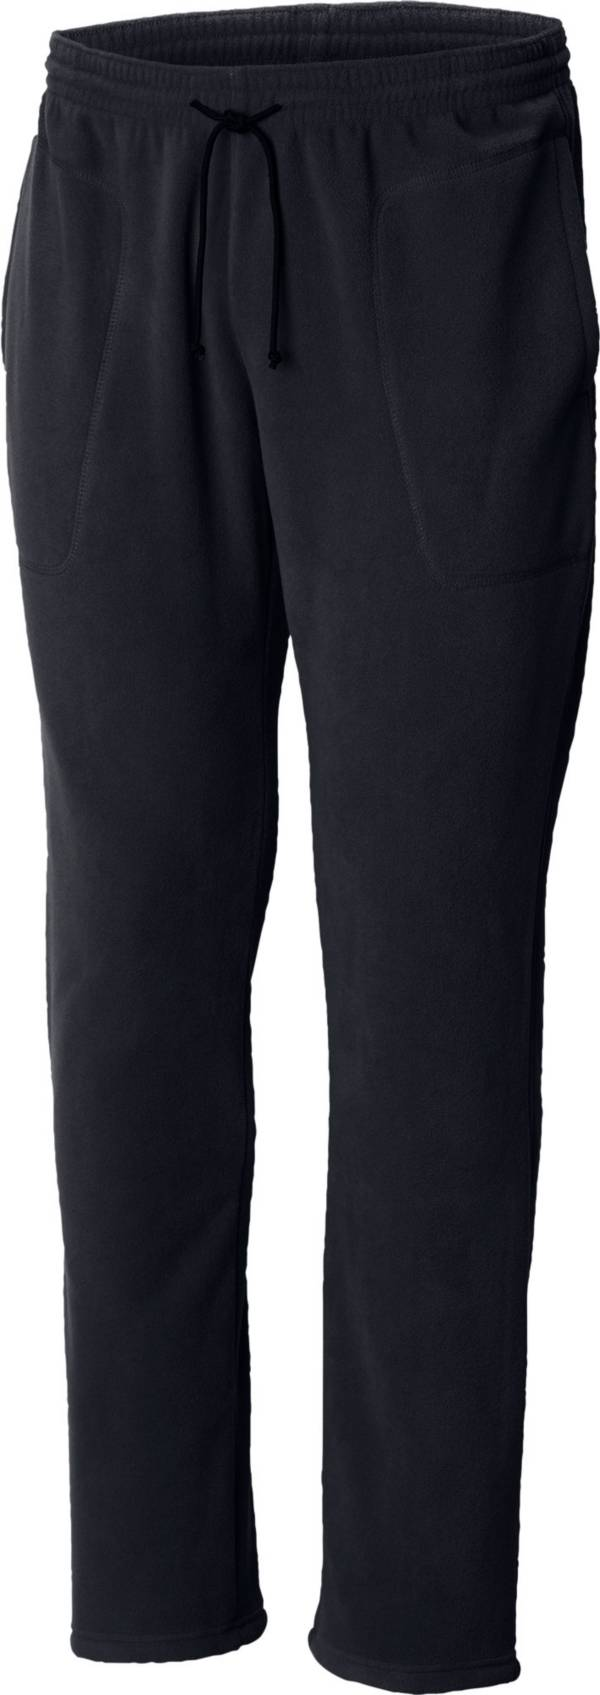 Columbia Men's Fast Trek II Fleece Pants product image